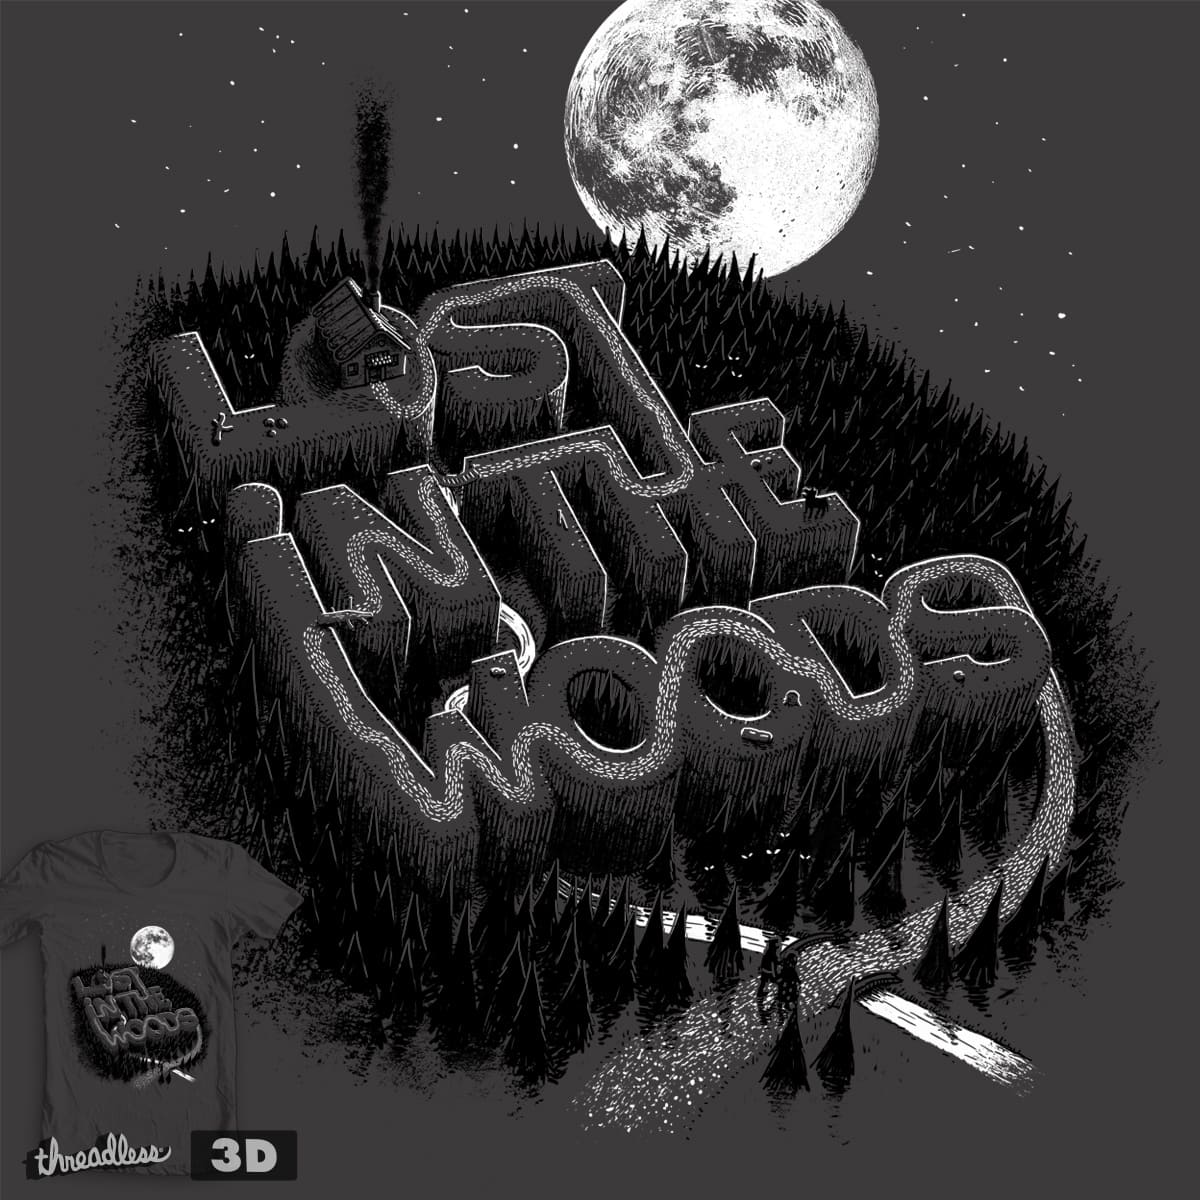 Lost in the woods by c-royal on Threadless